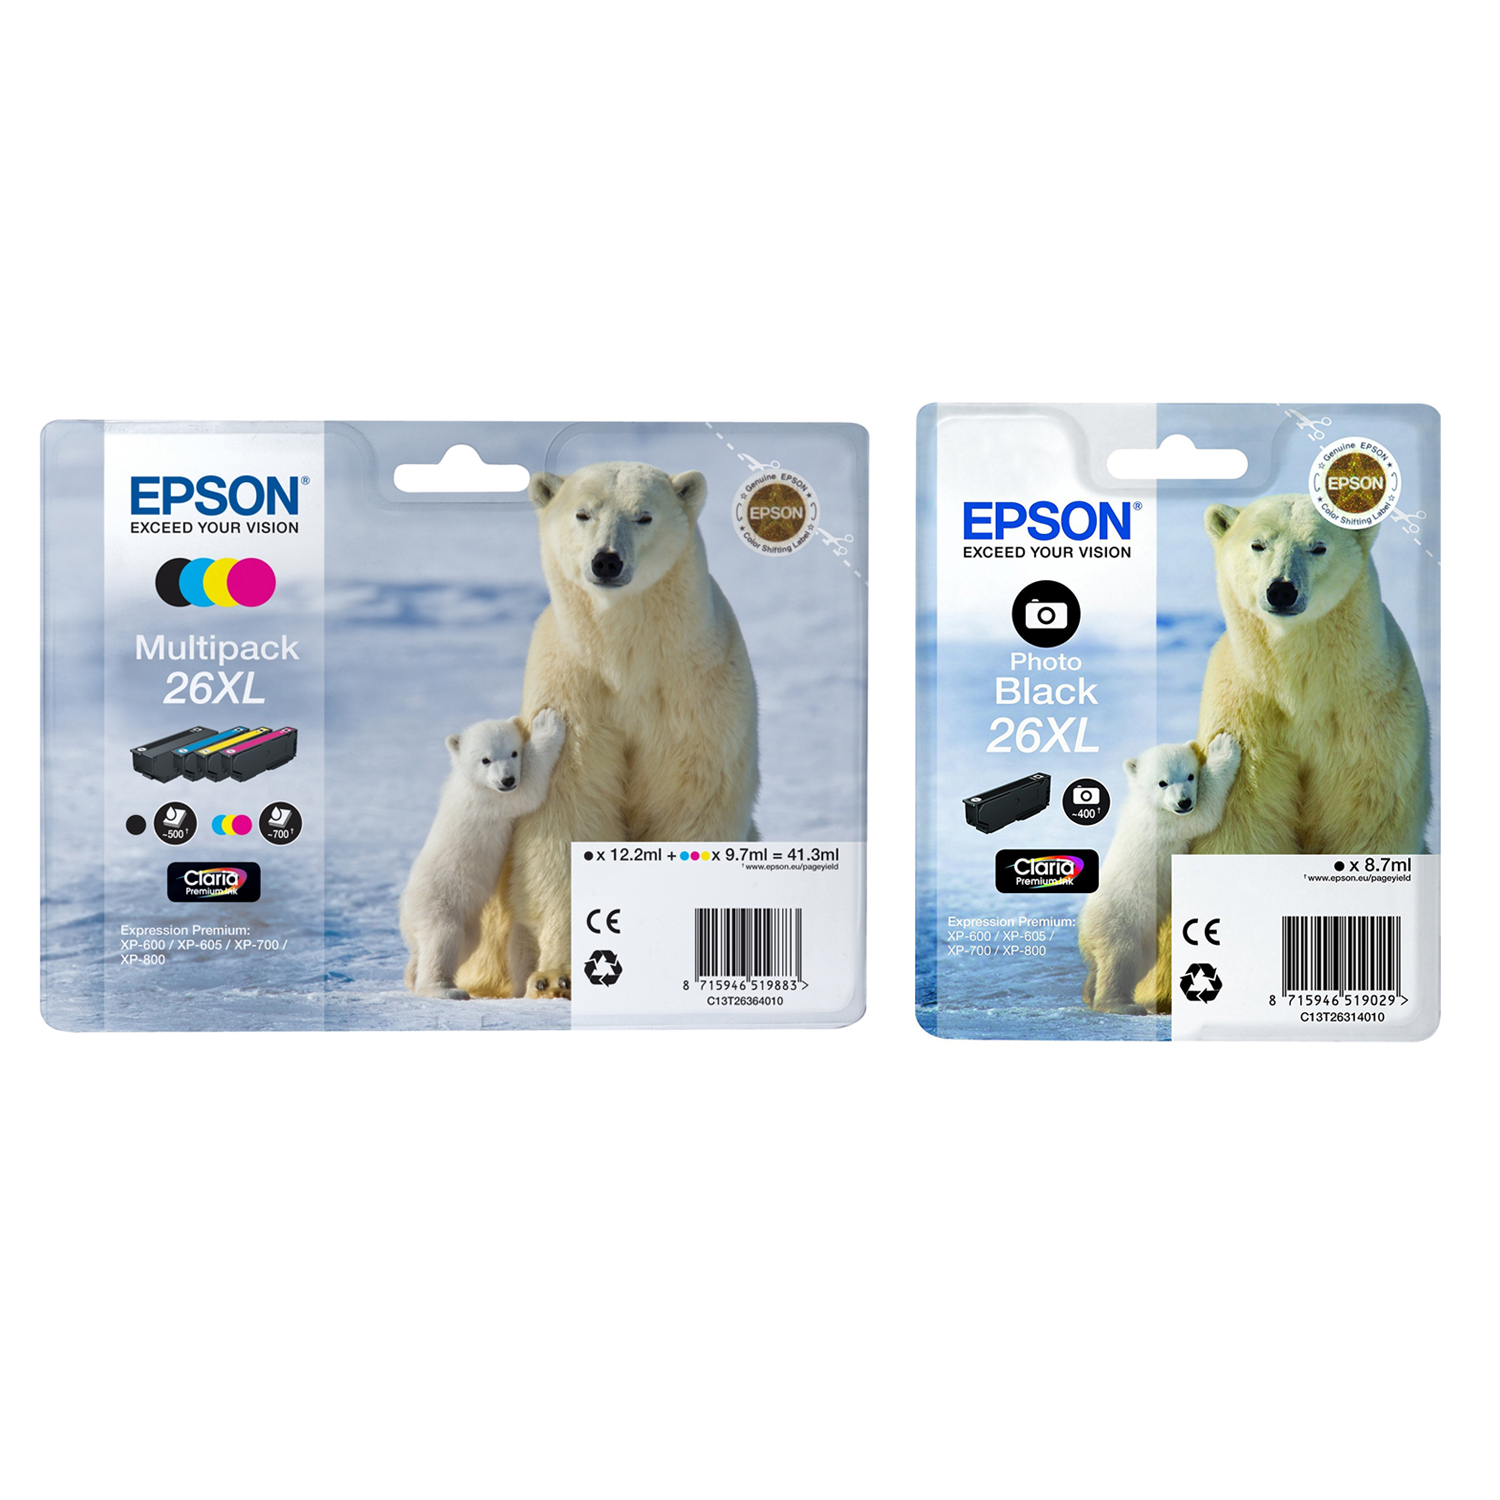 Original Epson 26XL C, M, Y, K, PB Multipack High Capacity Ink Cartridges (C13T26314012 / C13T26364010)